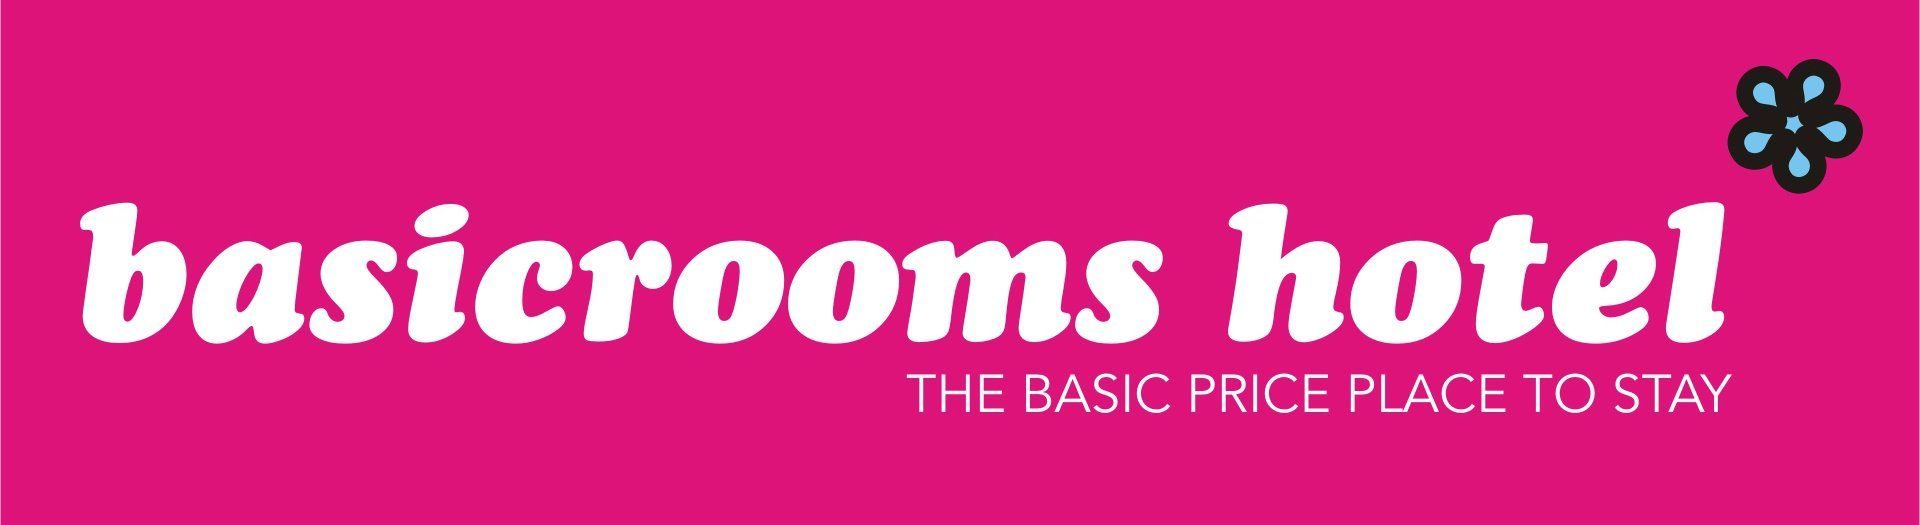 BasicRooms Hotel